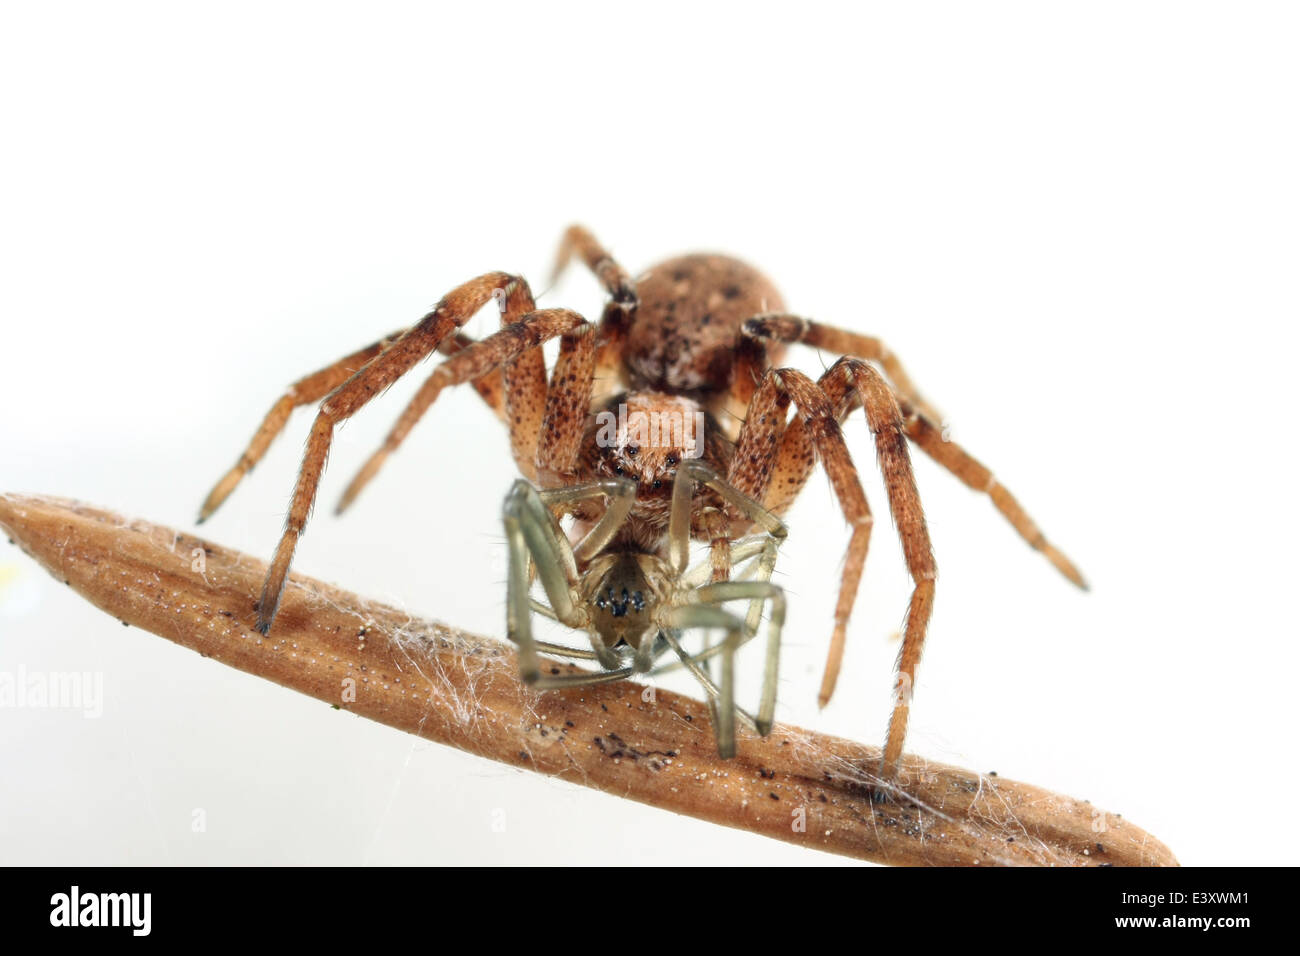 Female Philodromus sp spider, part of the family Philodromidae - Running crab spiders. Having another spider as Stock Photo